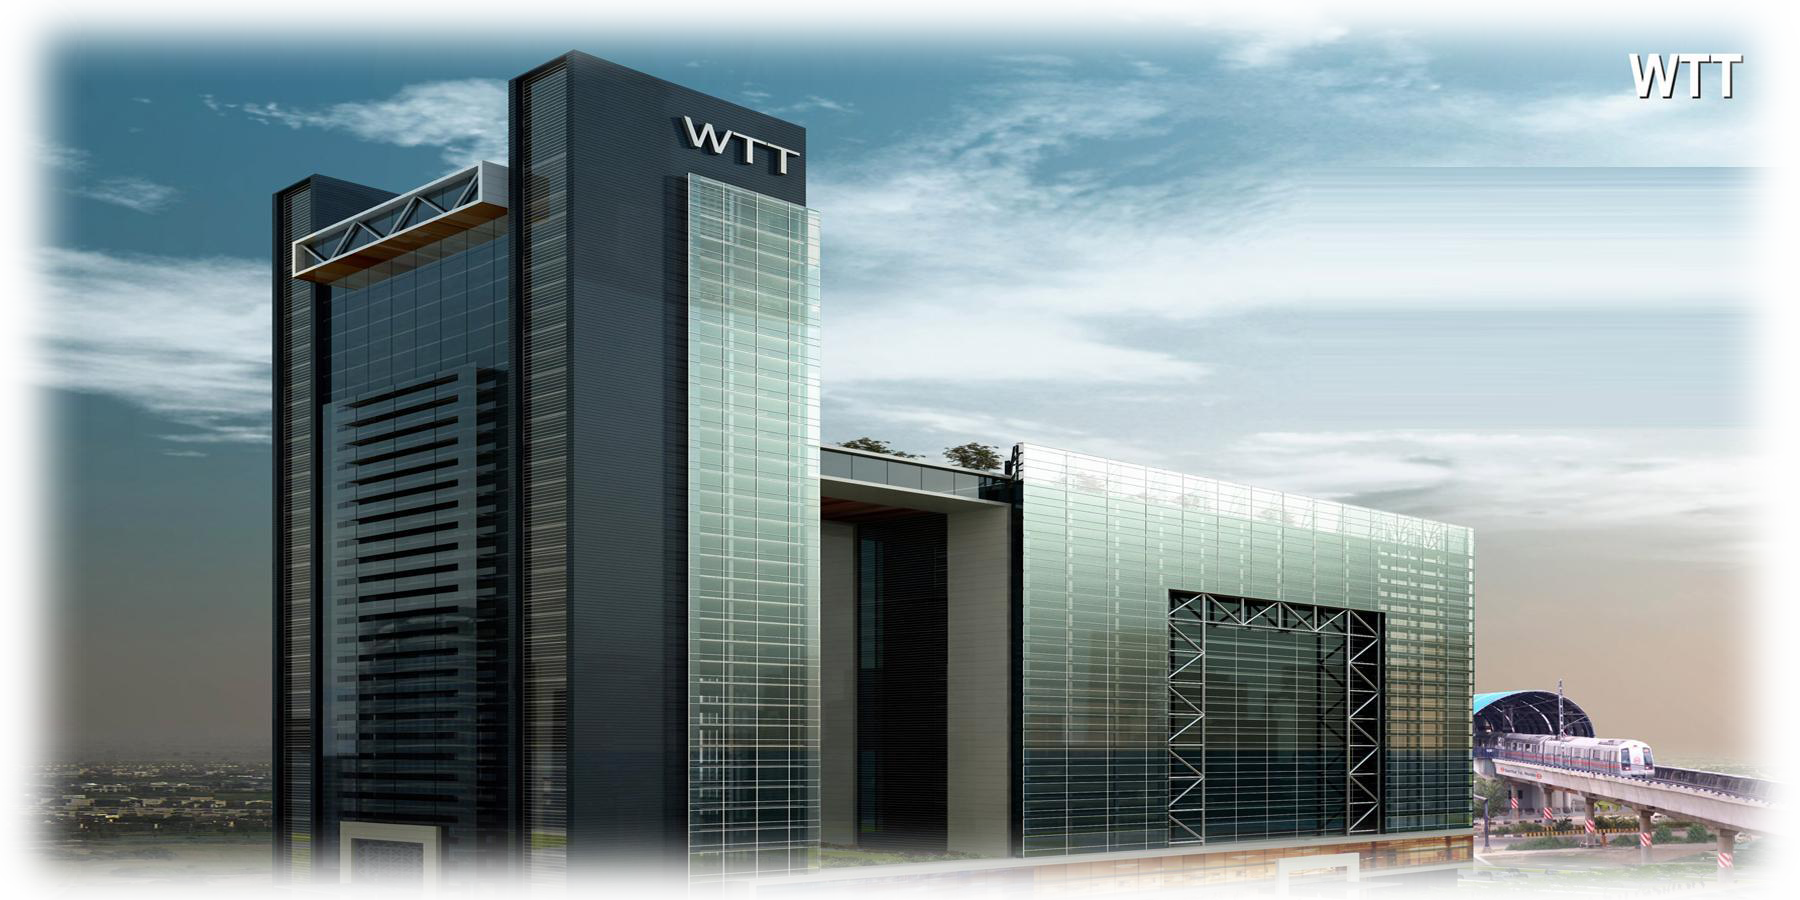 2546 sq. ft. Commercial Business Office available for Lease in World Trade Tower, Noida. The Office Building complex is located right opposite Noida Sector 16 Metro Station.  The building is on Delhi Noida Direct Flyway and is Easily Connected to South Delhi and East Delhi. WTT, Noida is Ready For Fit-Outs and Already Occupied by several MNCs.  Reach us at 9810810142 for customized requirements.